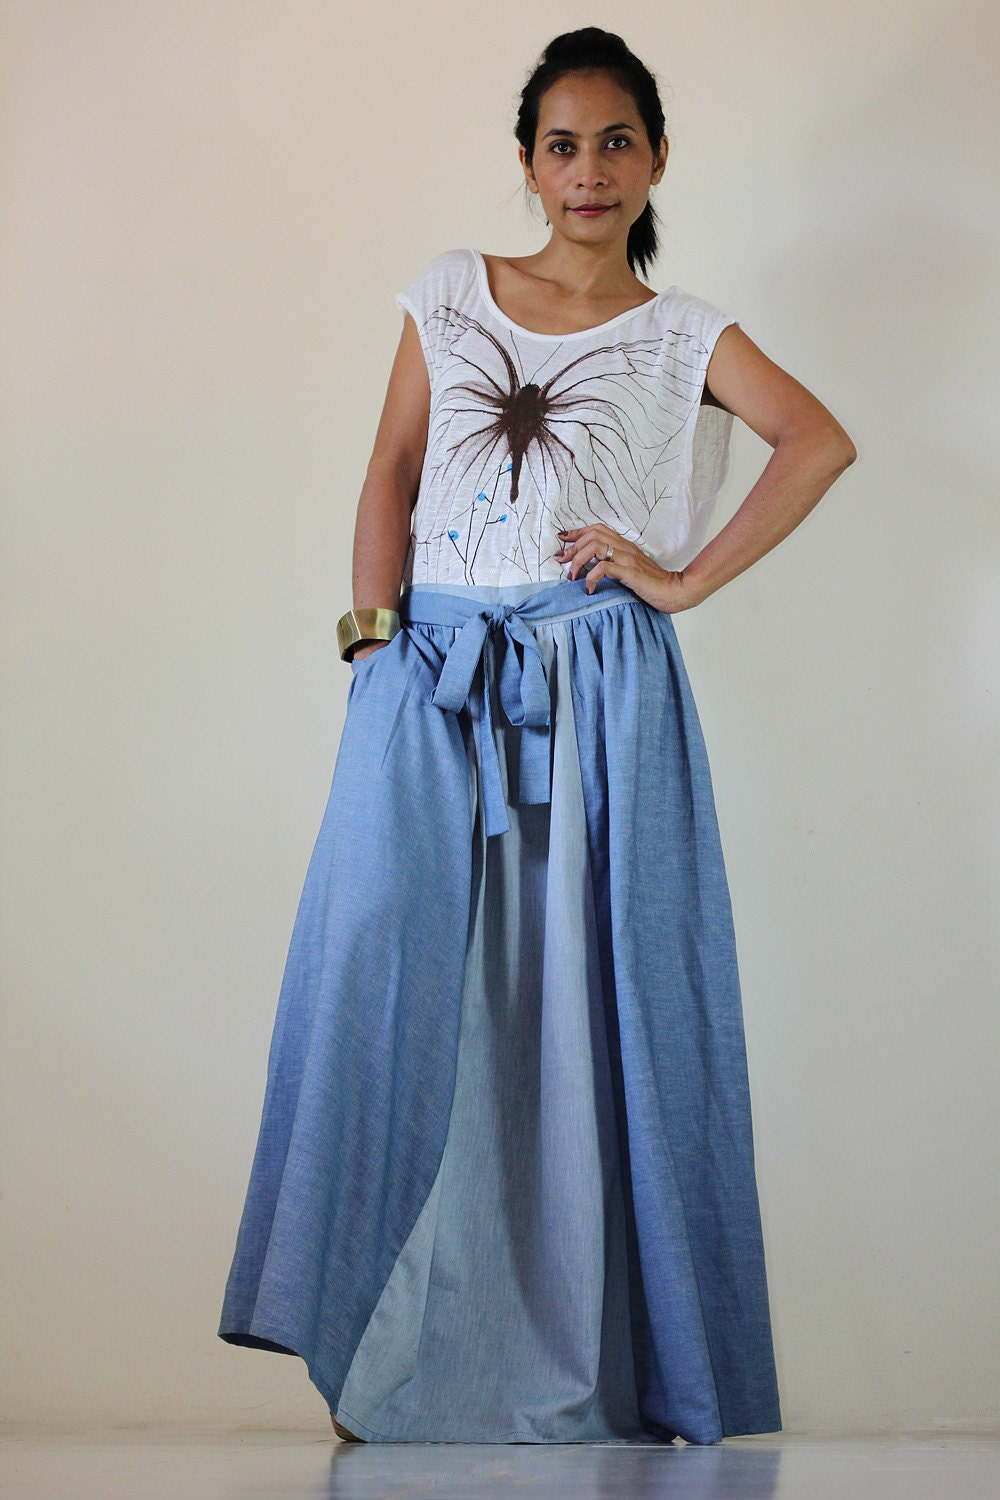 Maxi skirt denim – The most popular models skirts